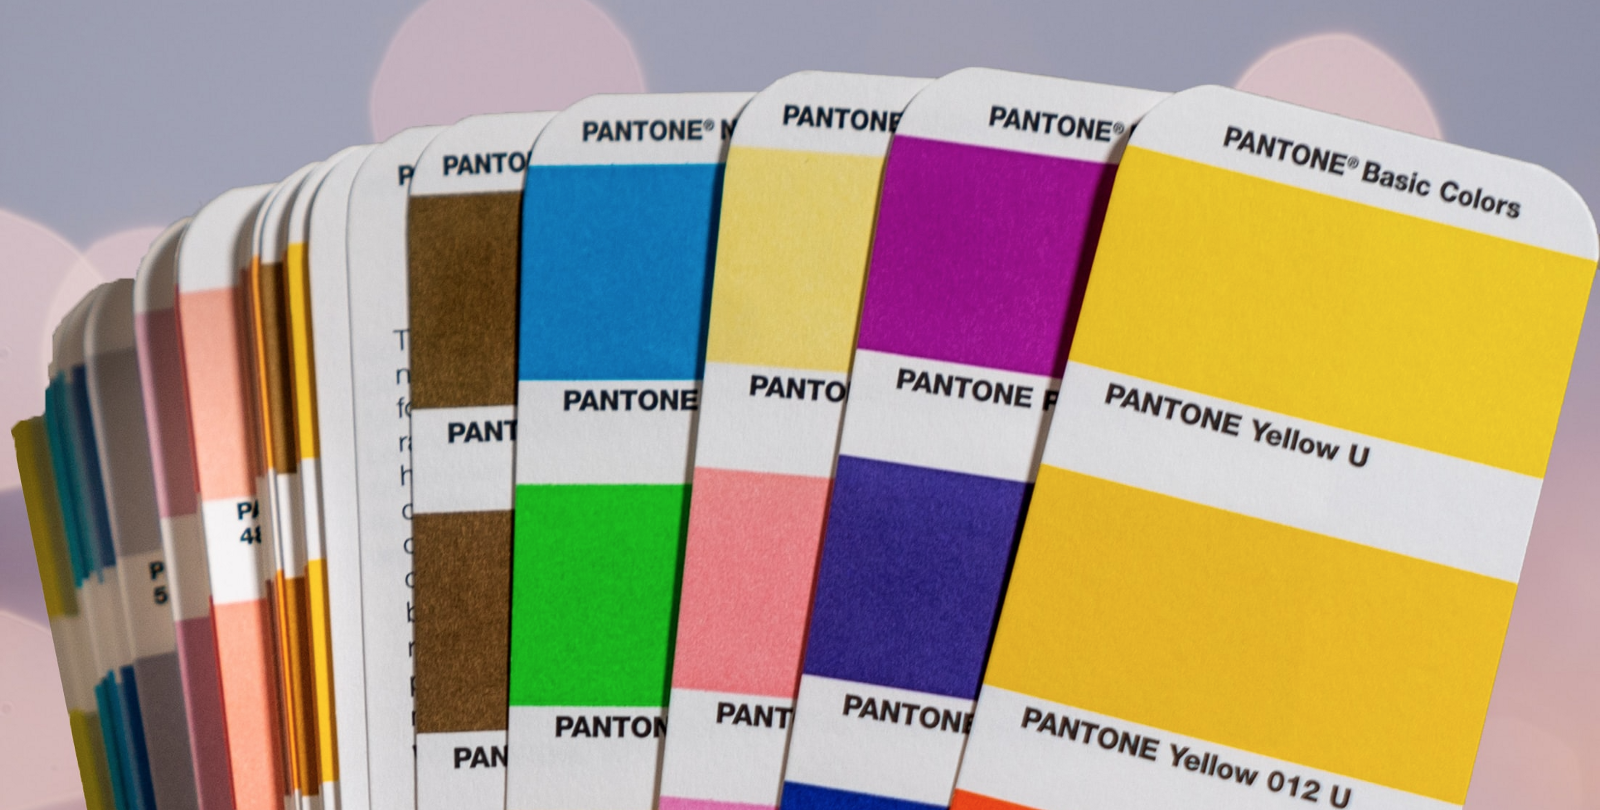 Many Pantone color swatches